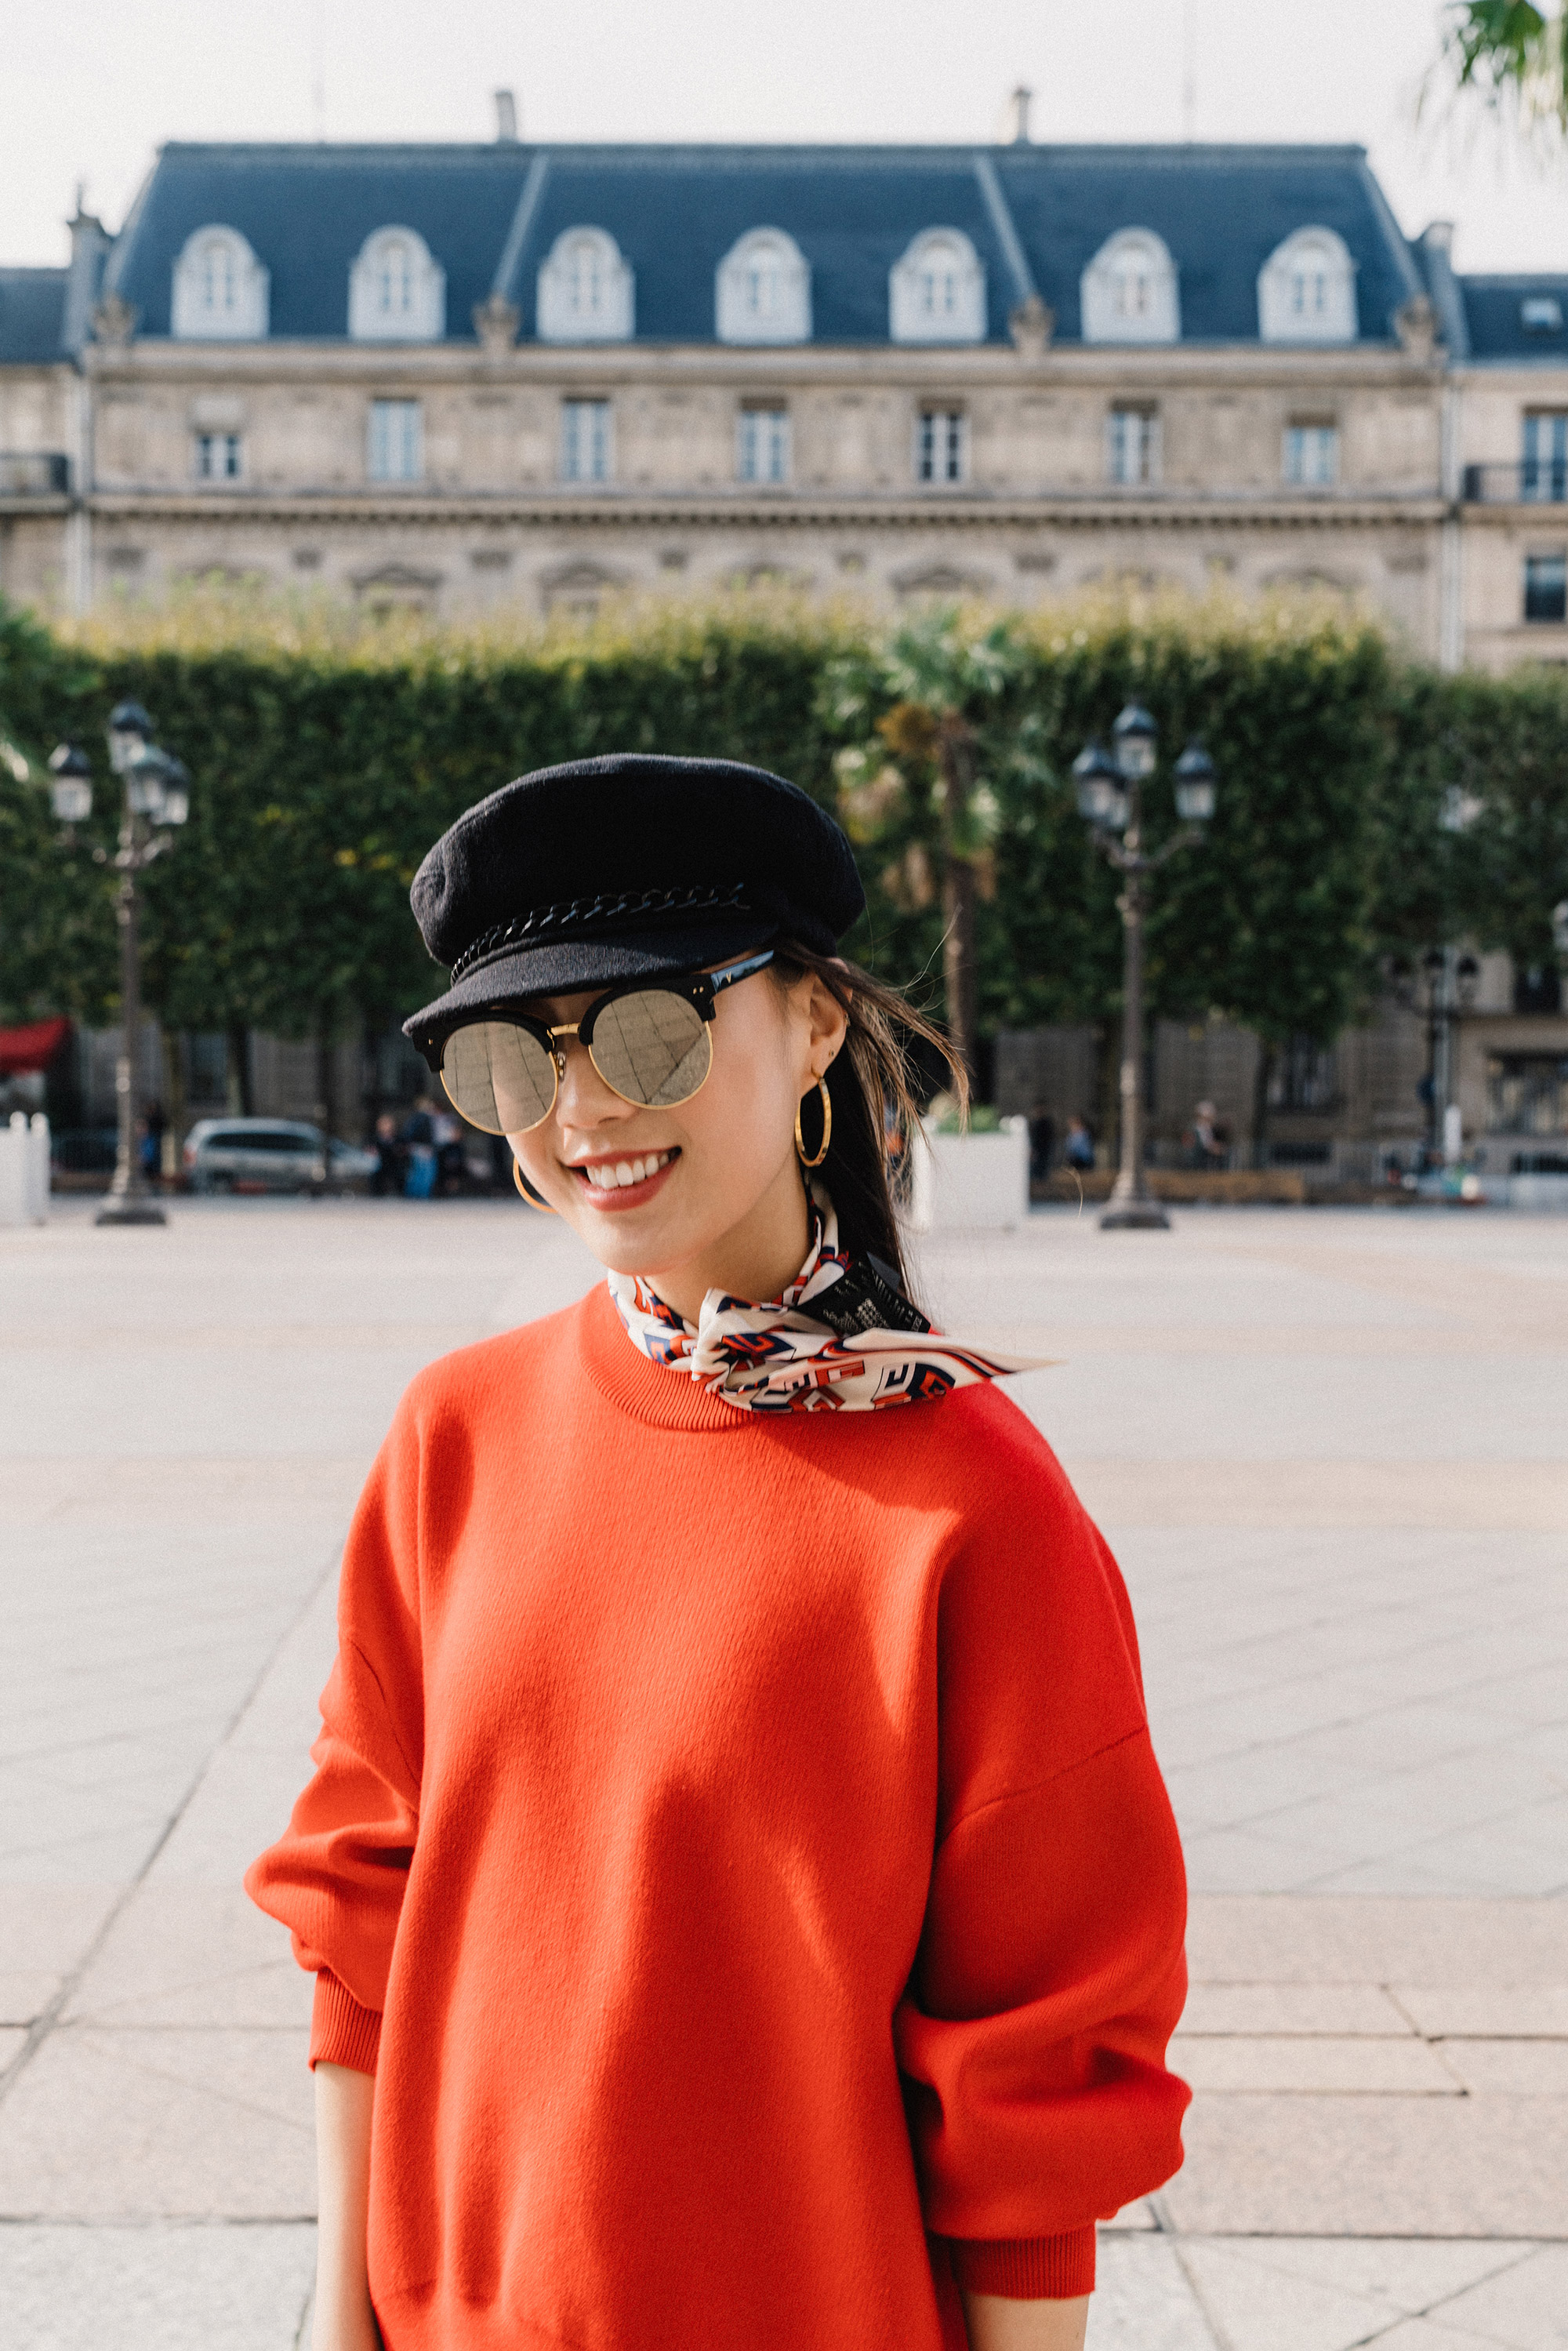 DKNY Pullover ,  Gucci Scarf , Eugenia Kim Hat,  Gentle Monster Sunnies ,  Vita Fede Earrings